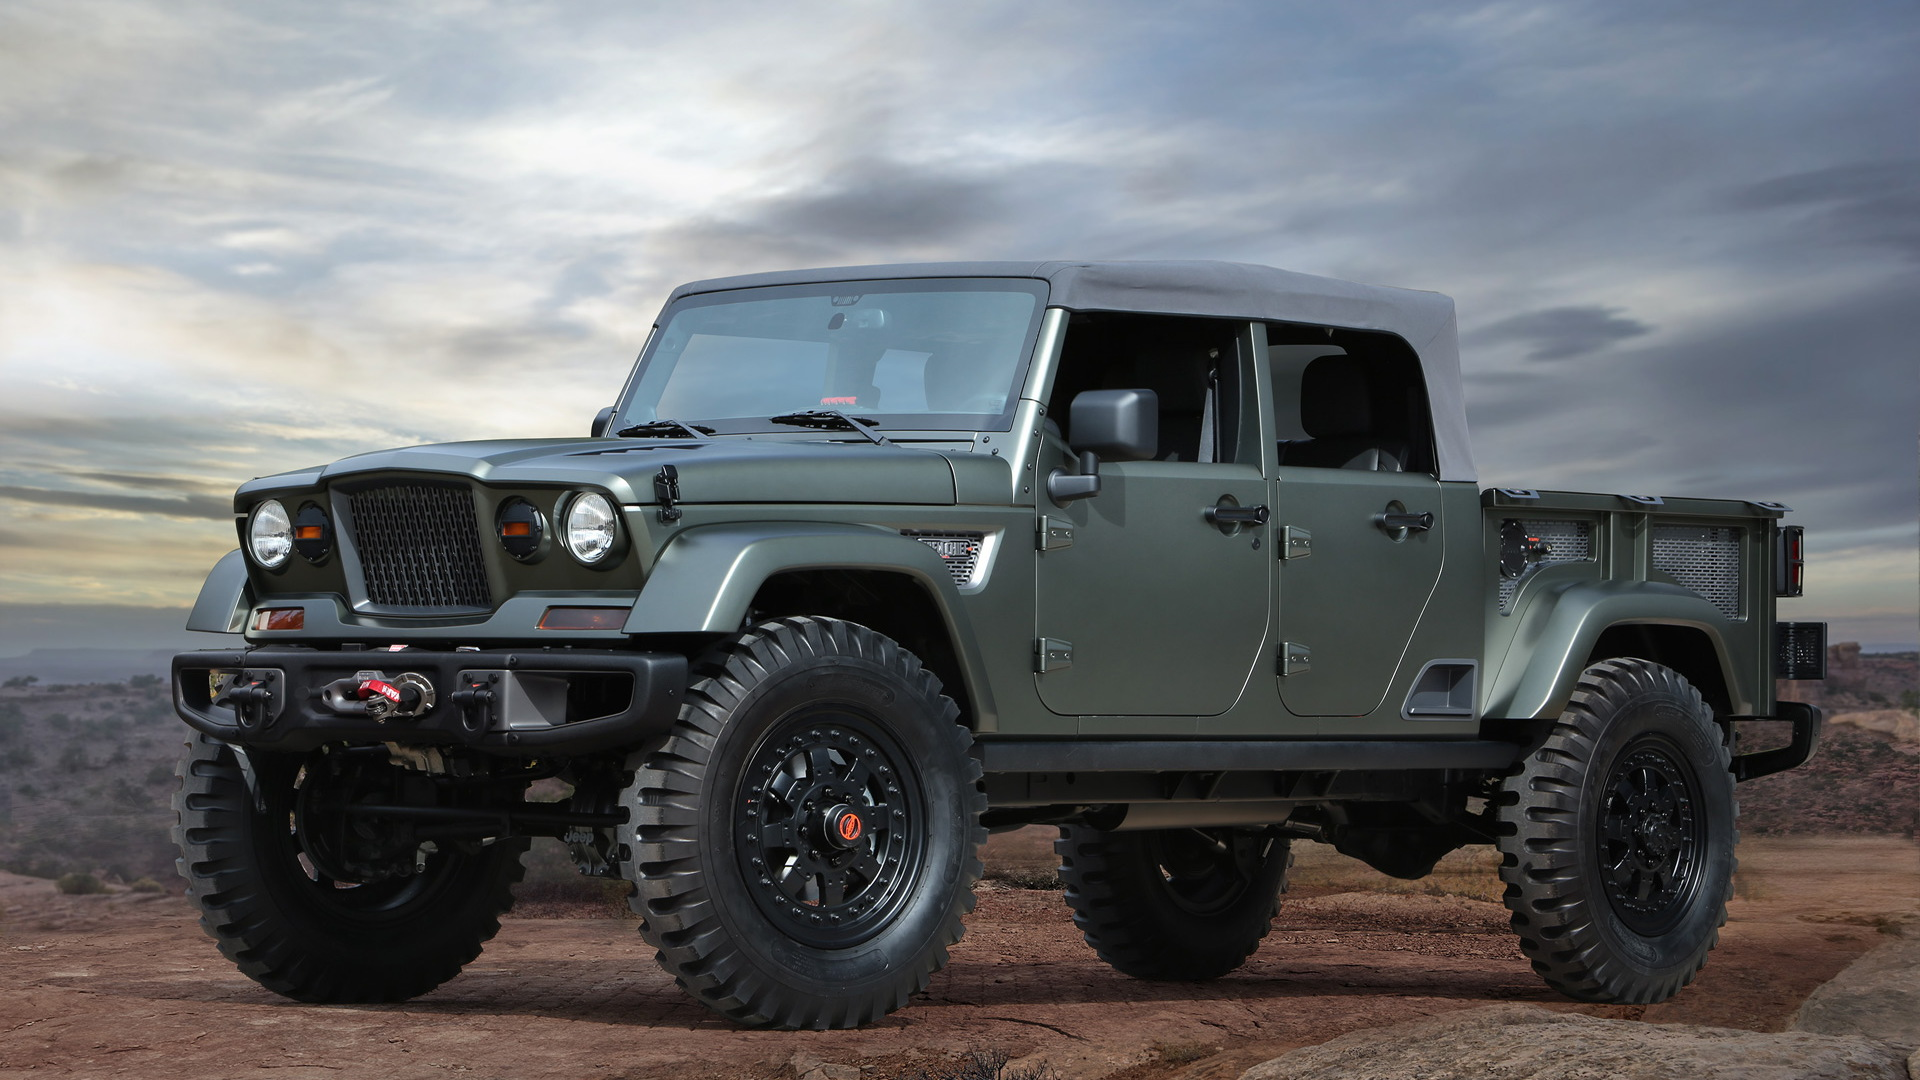 Jeep Crew Chief 715 concept, 2016 Easter Jeep Safari